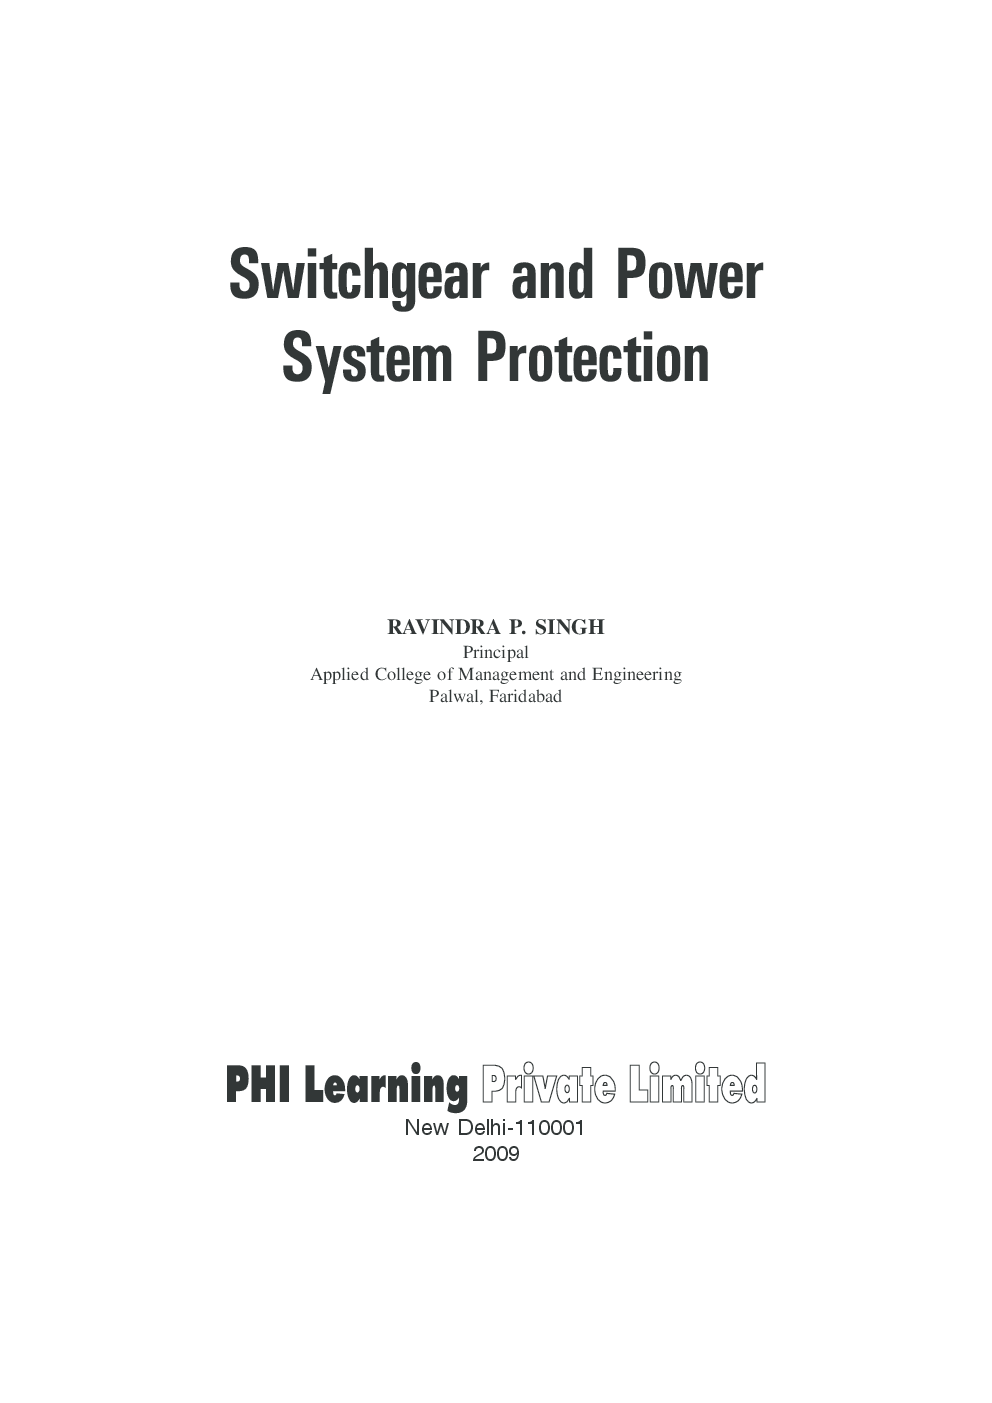 Download Switchgear And Power System Protection By